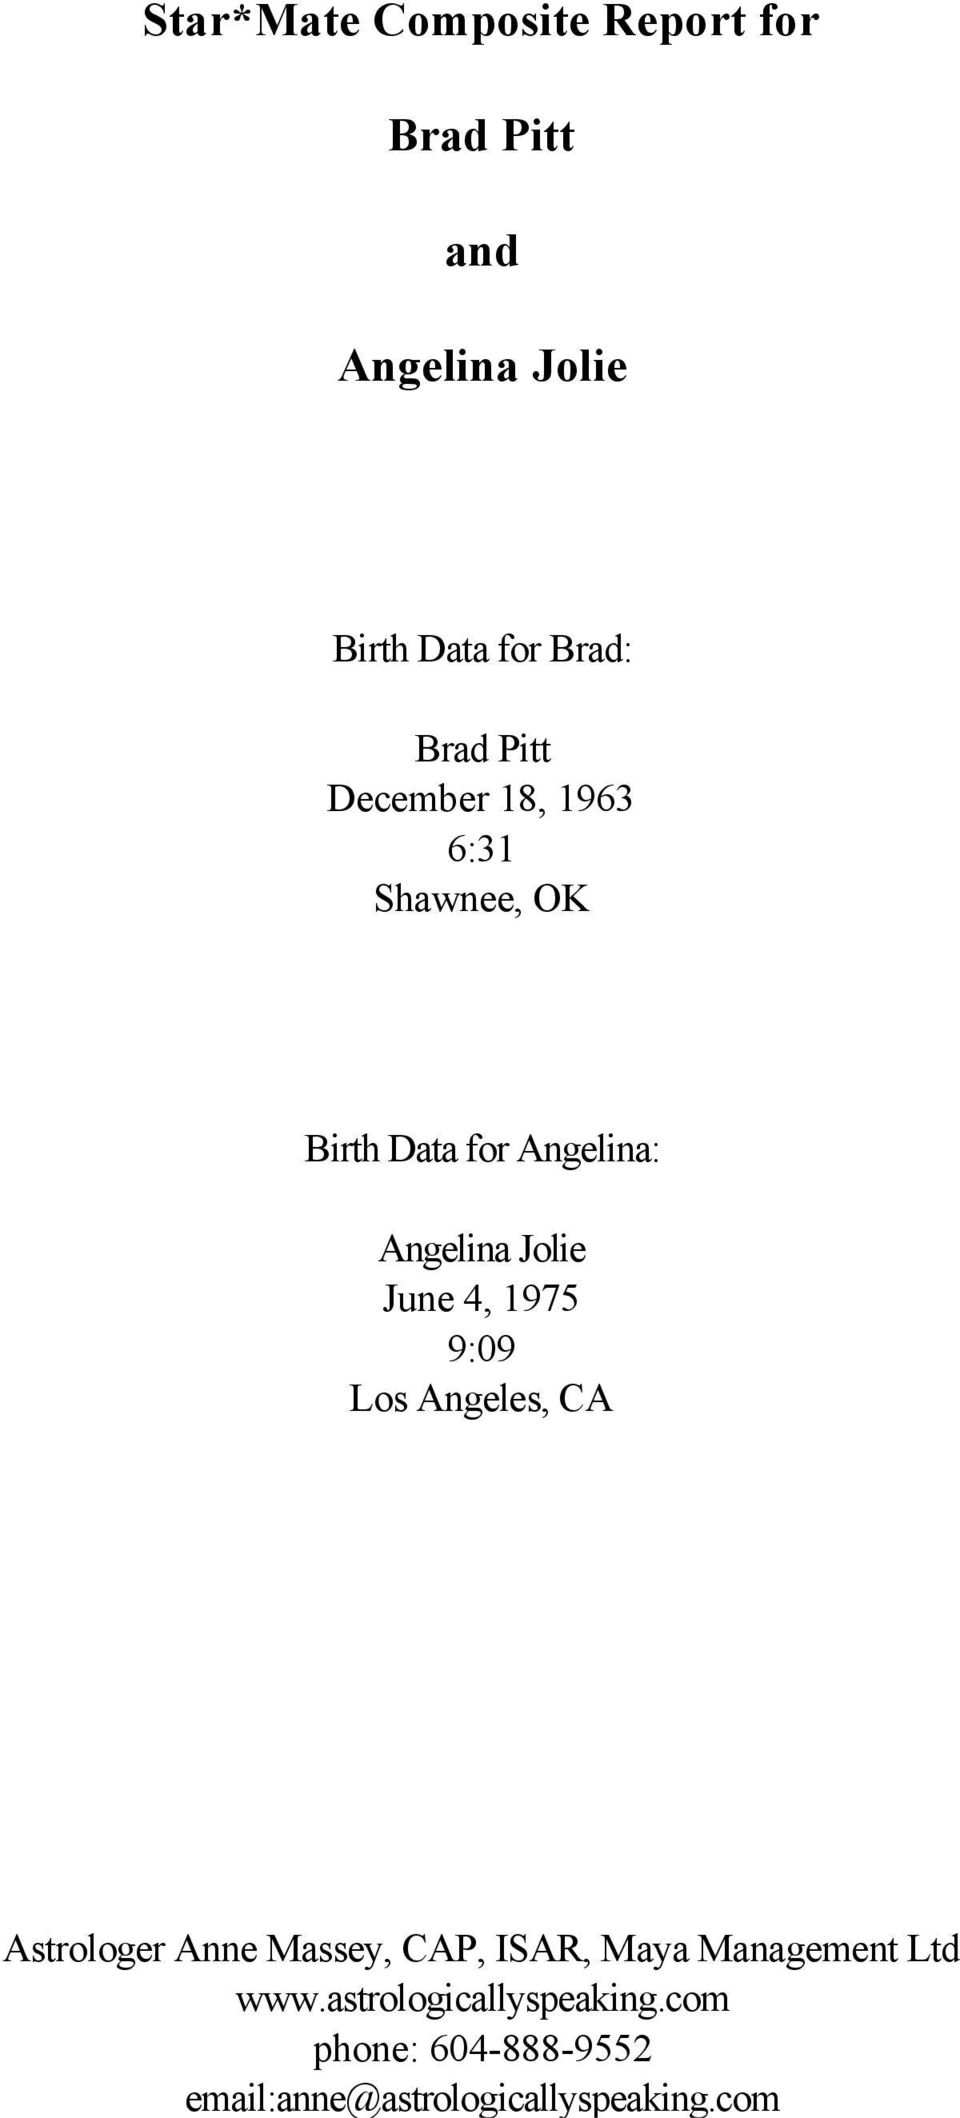 Star*Mate Composite Report for  Brad Pitt  and  Angelina